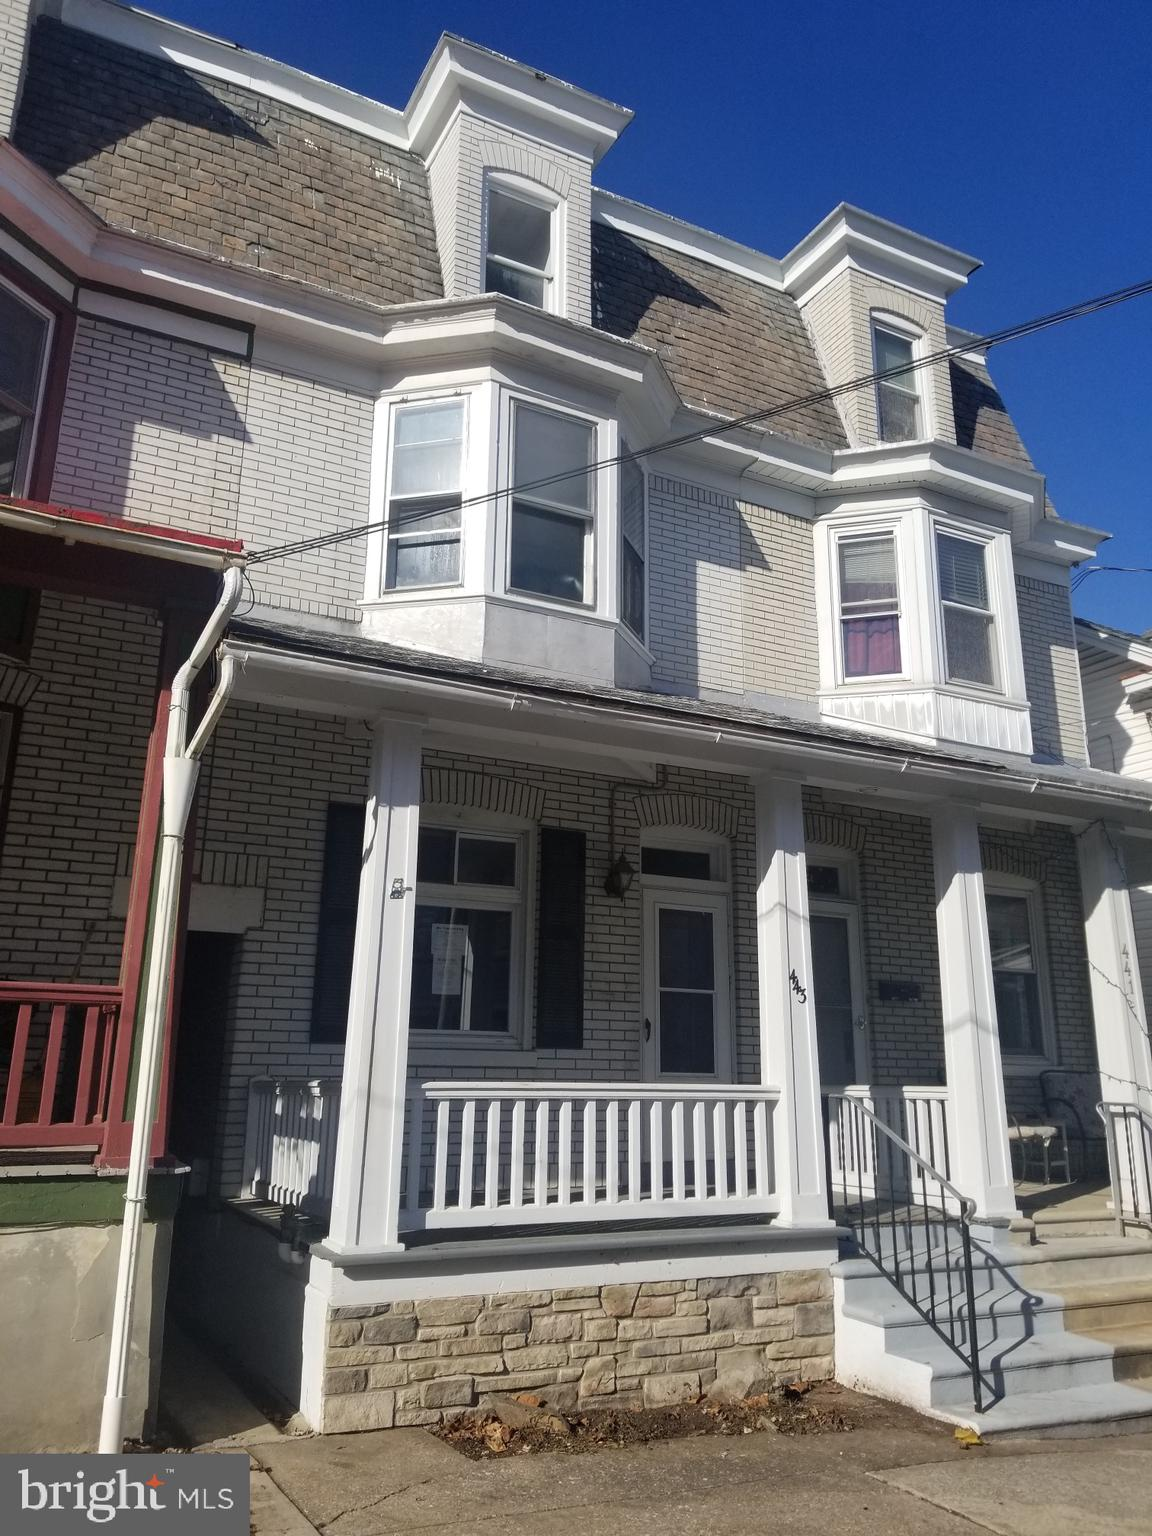 Located within a block of  Kutztown Main St. business district as well as a short walk to Kutztown University!  Great location!  5 bedrooms, some upgrades throughout. Spacious living room, 1st floor laundry, nice yard with off street parking.  Alley in rear of home.   Sold as is.  Bank owned.  HUD case #446-365256. Buyer pays both sides of transfer tax and is also responsible for any required municipality inspections/repairs.